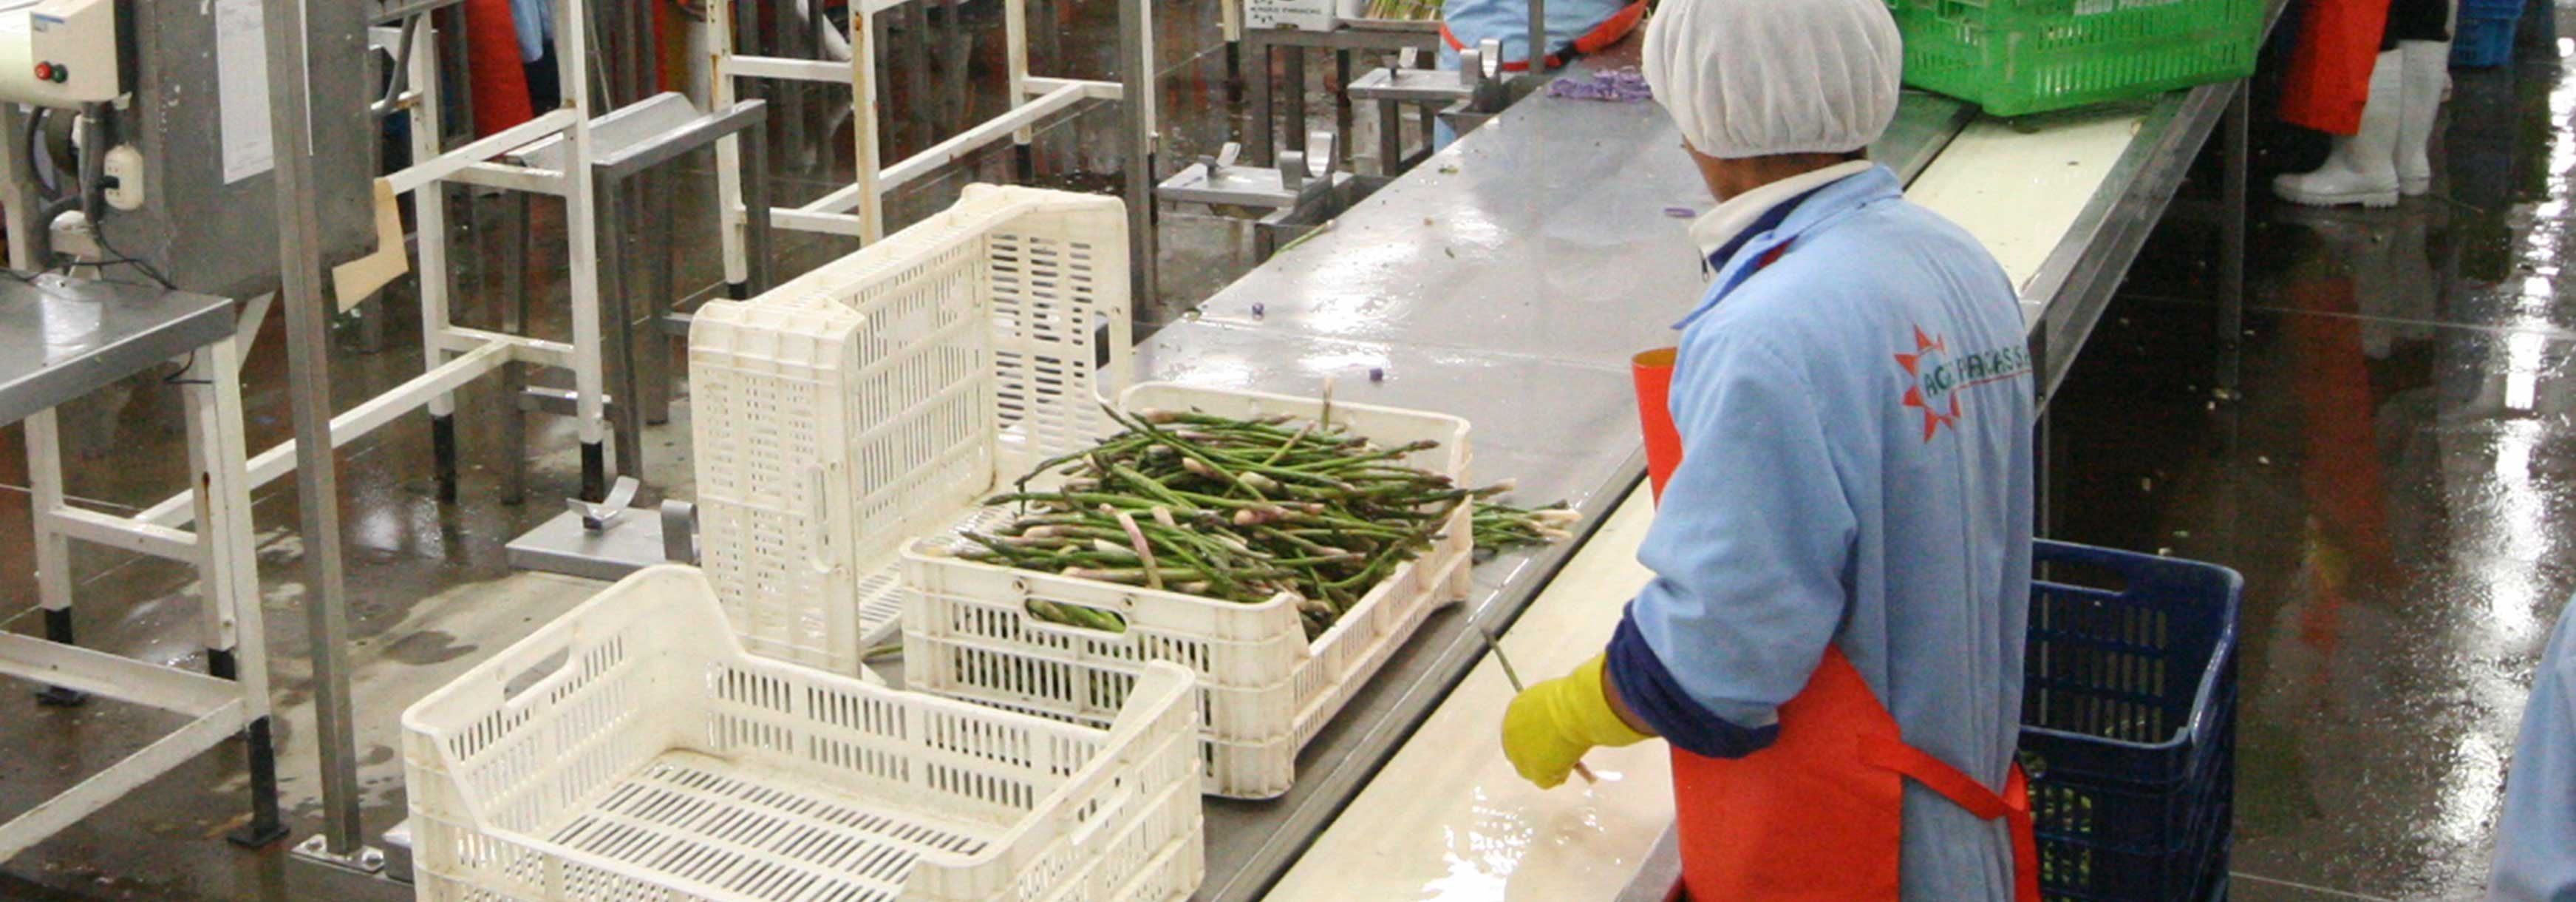 Photograph of Asparagus being manufactured at the Barfoots Nazca farm in Peru